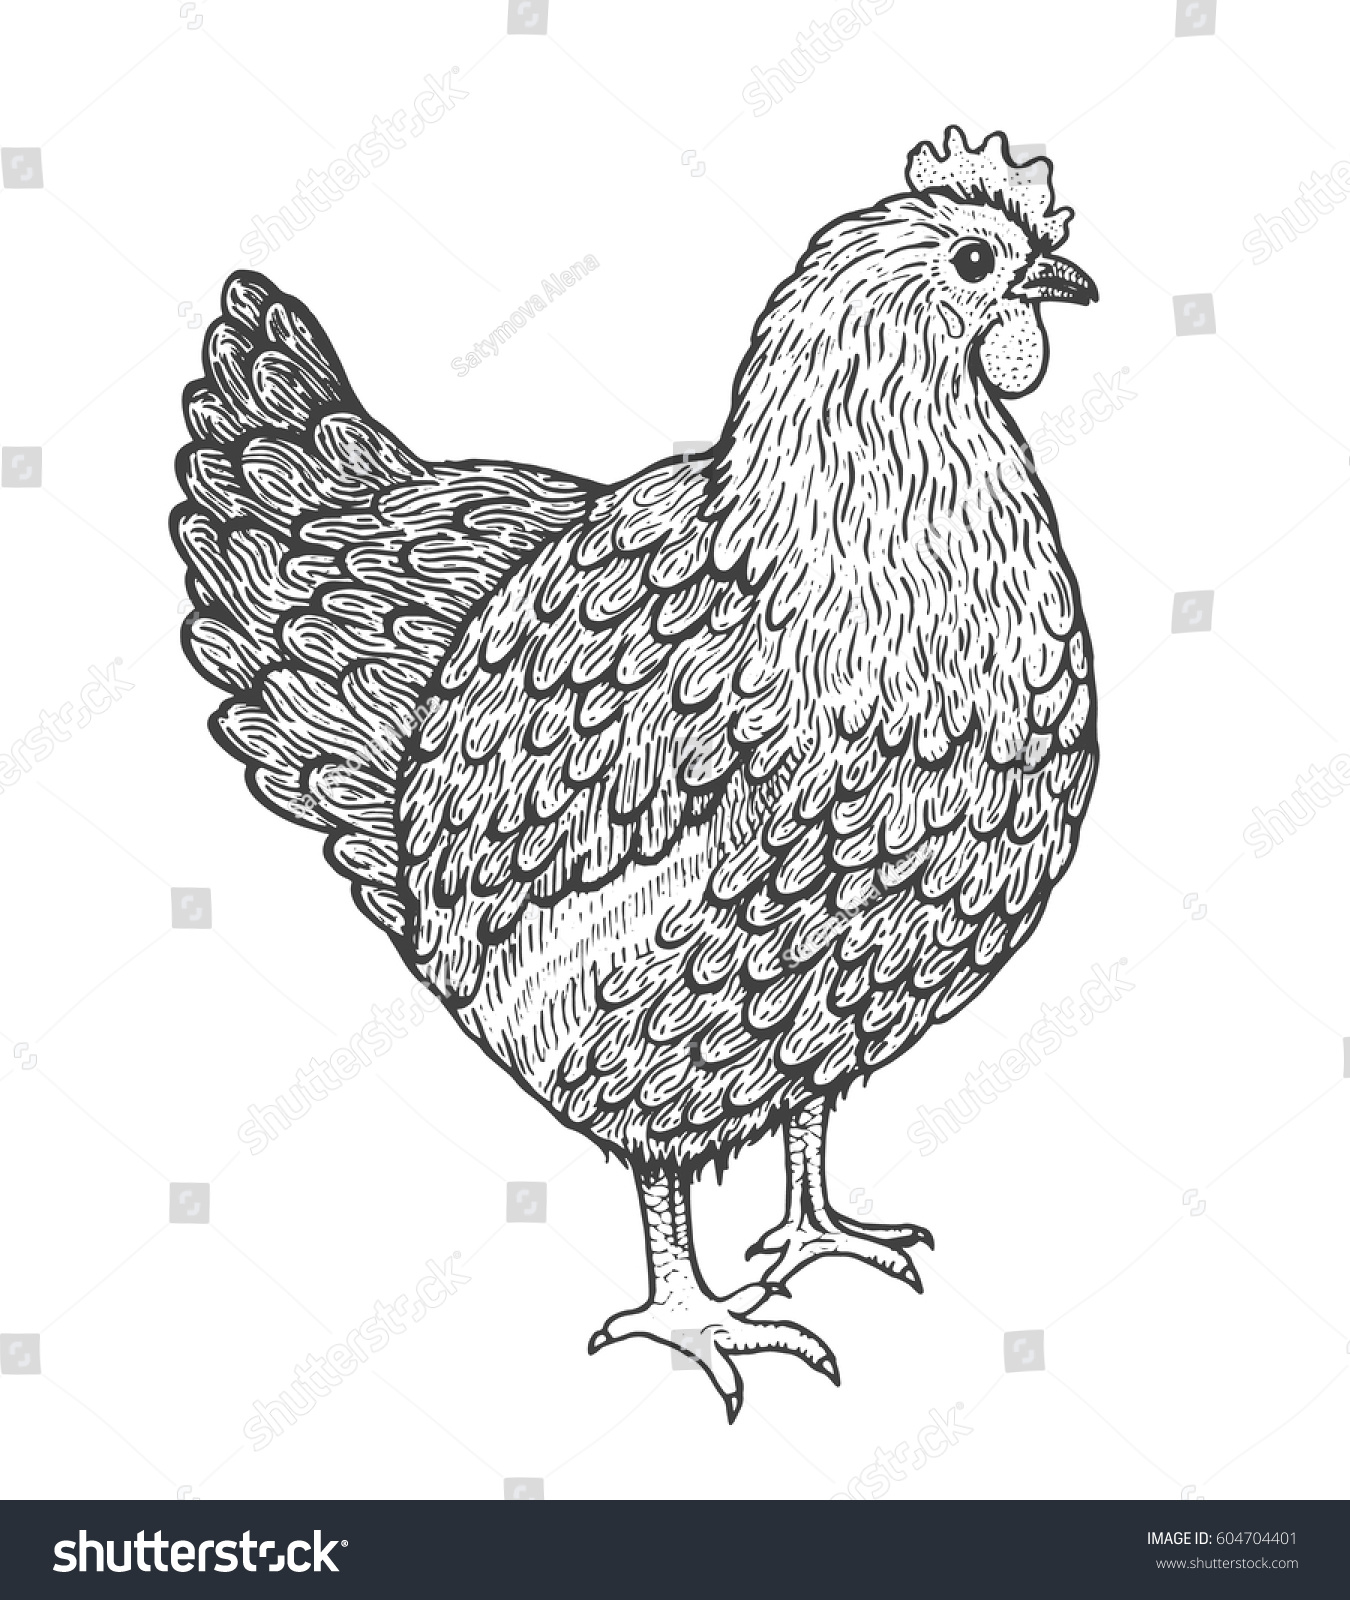 Line Drawing Hen : Sketch illustration hen line art style stock vector